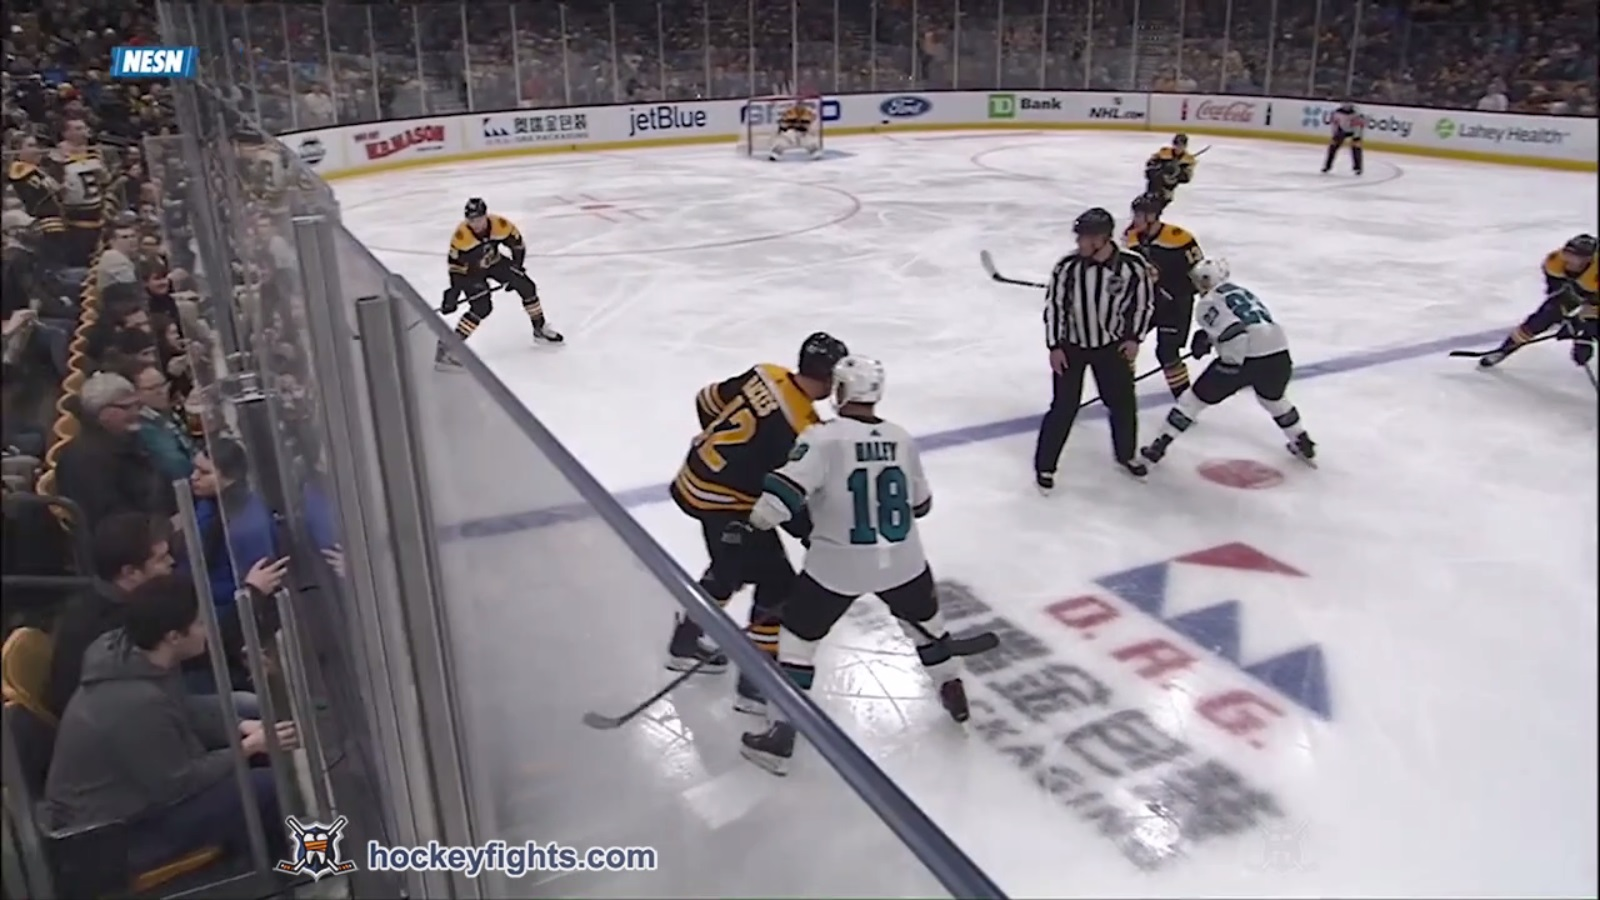 David Backes vs. Micheal Haley